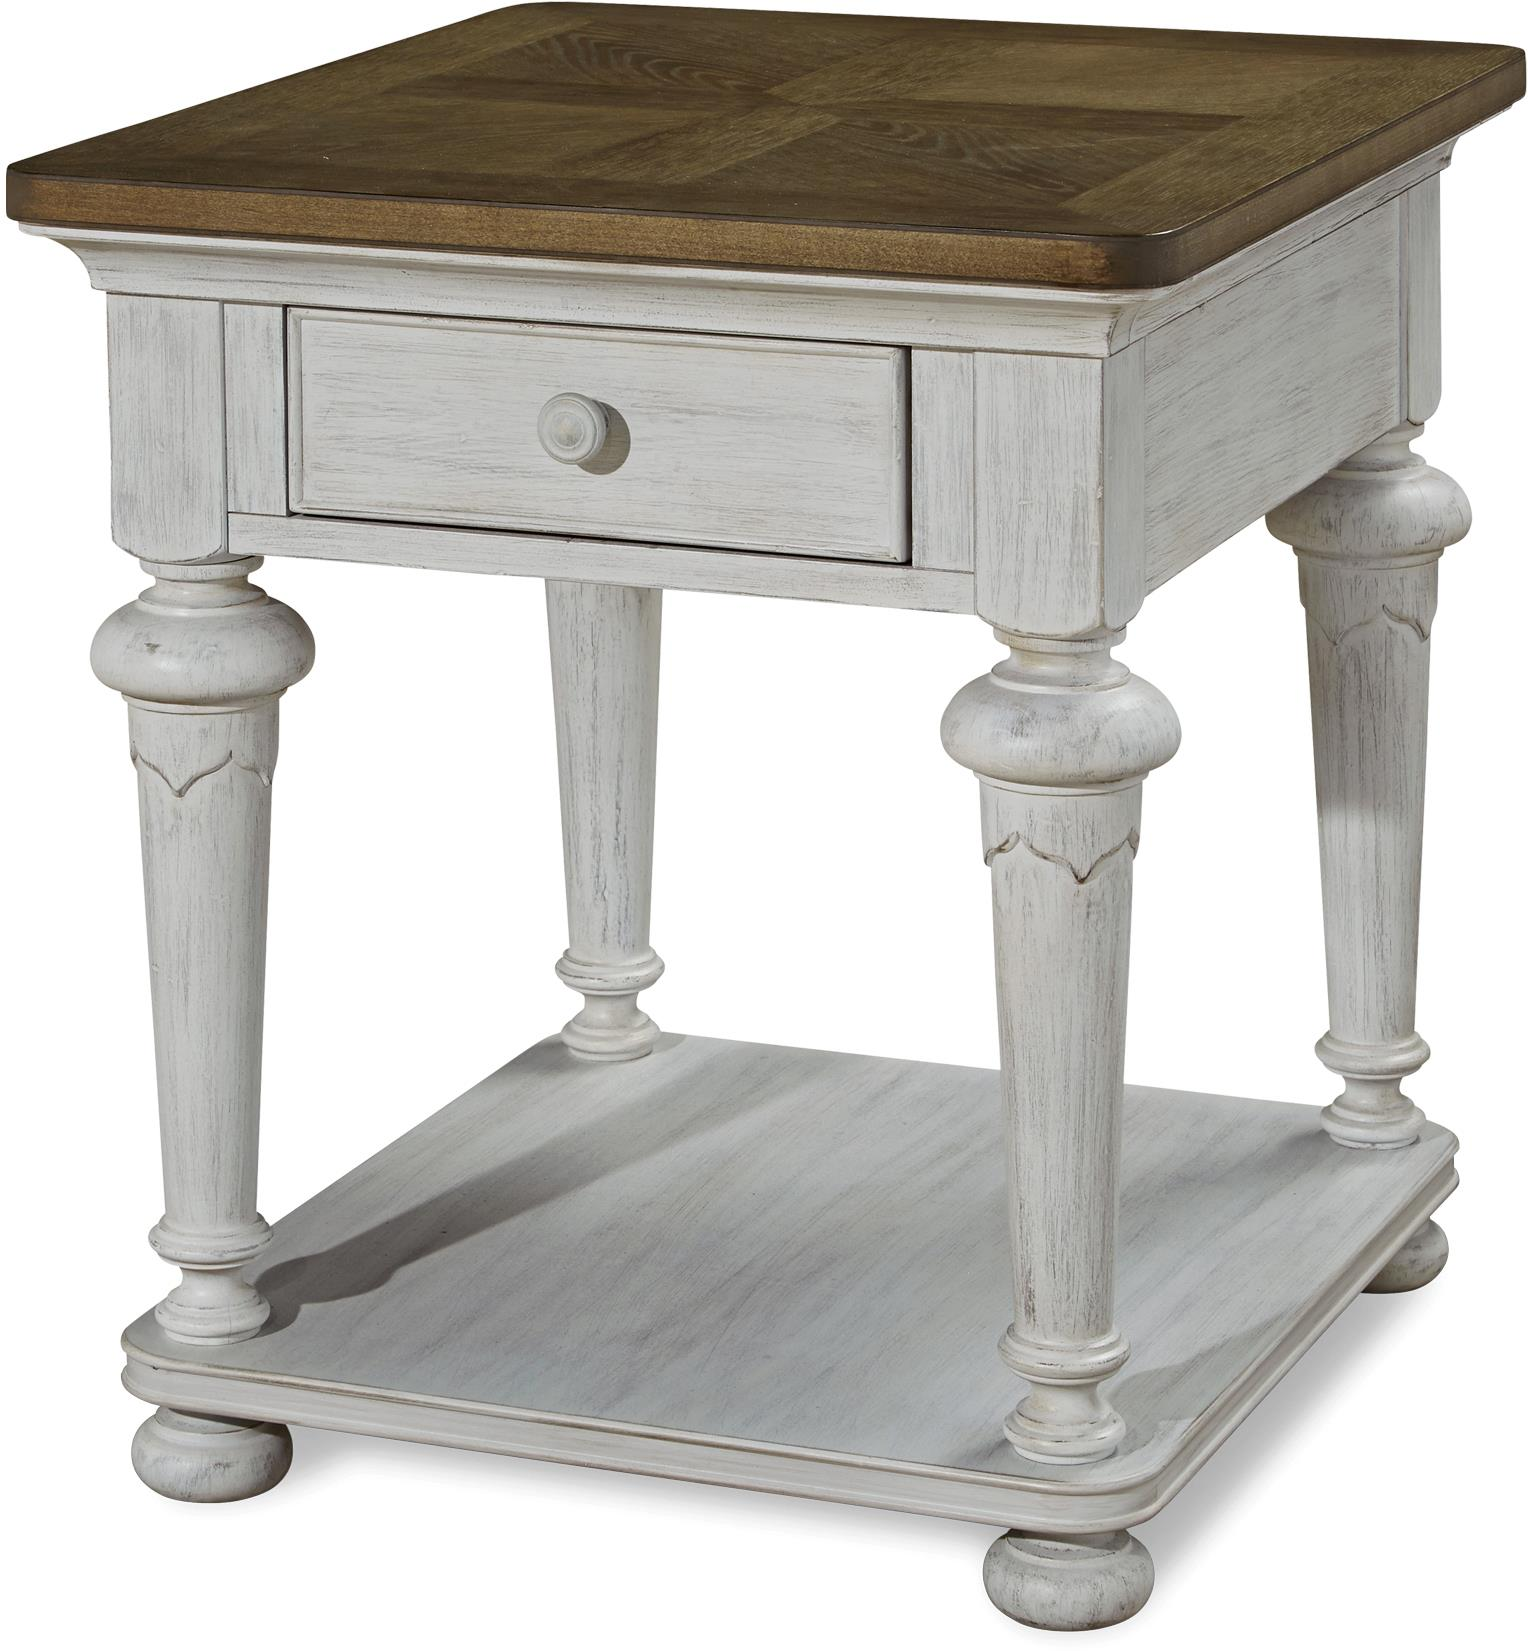 Universal Dogwood End Table - Item Number: 597A804